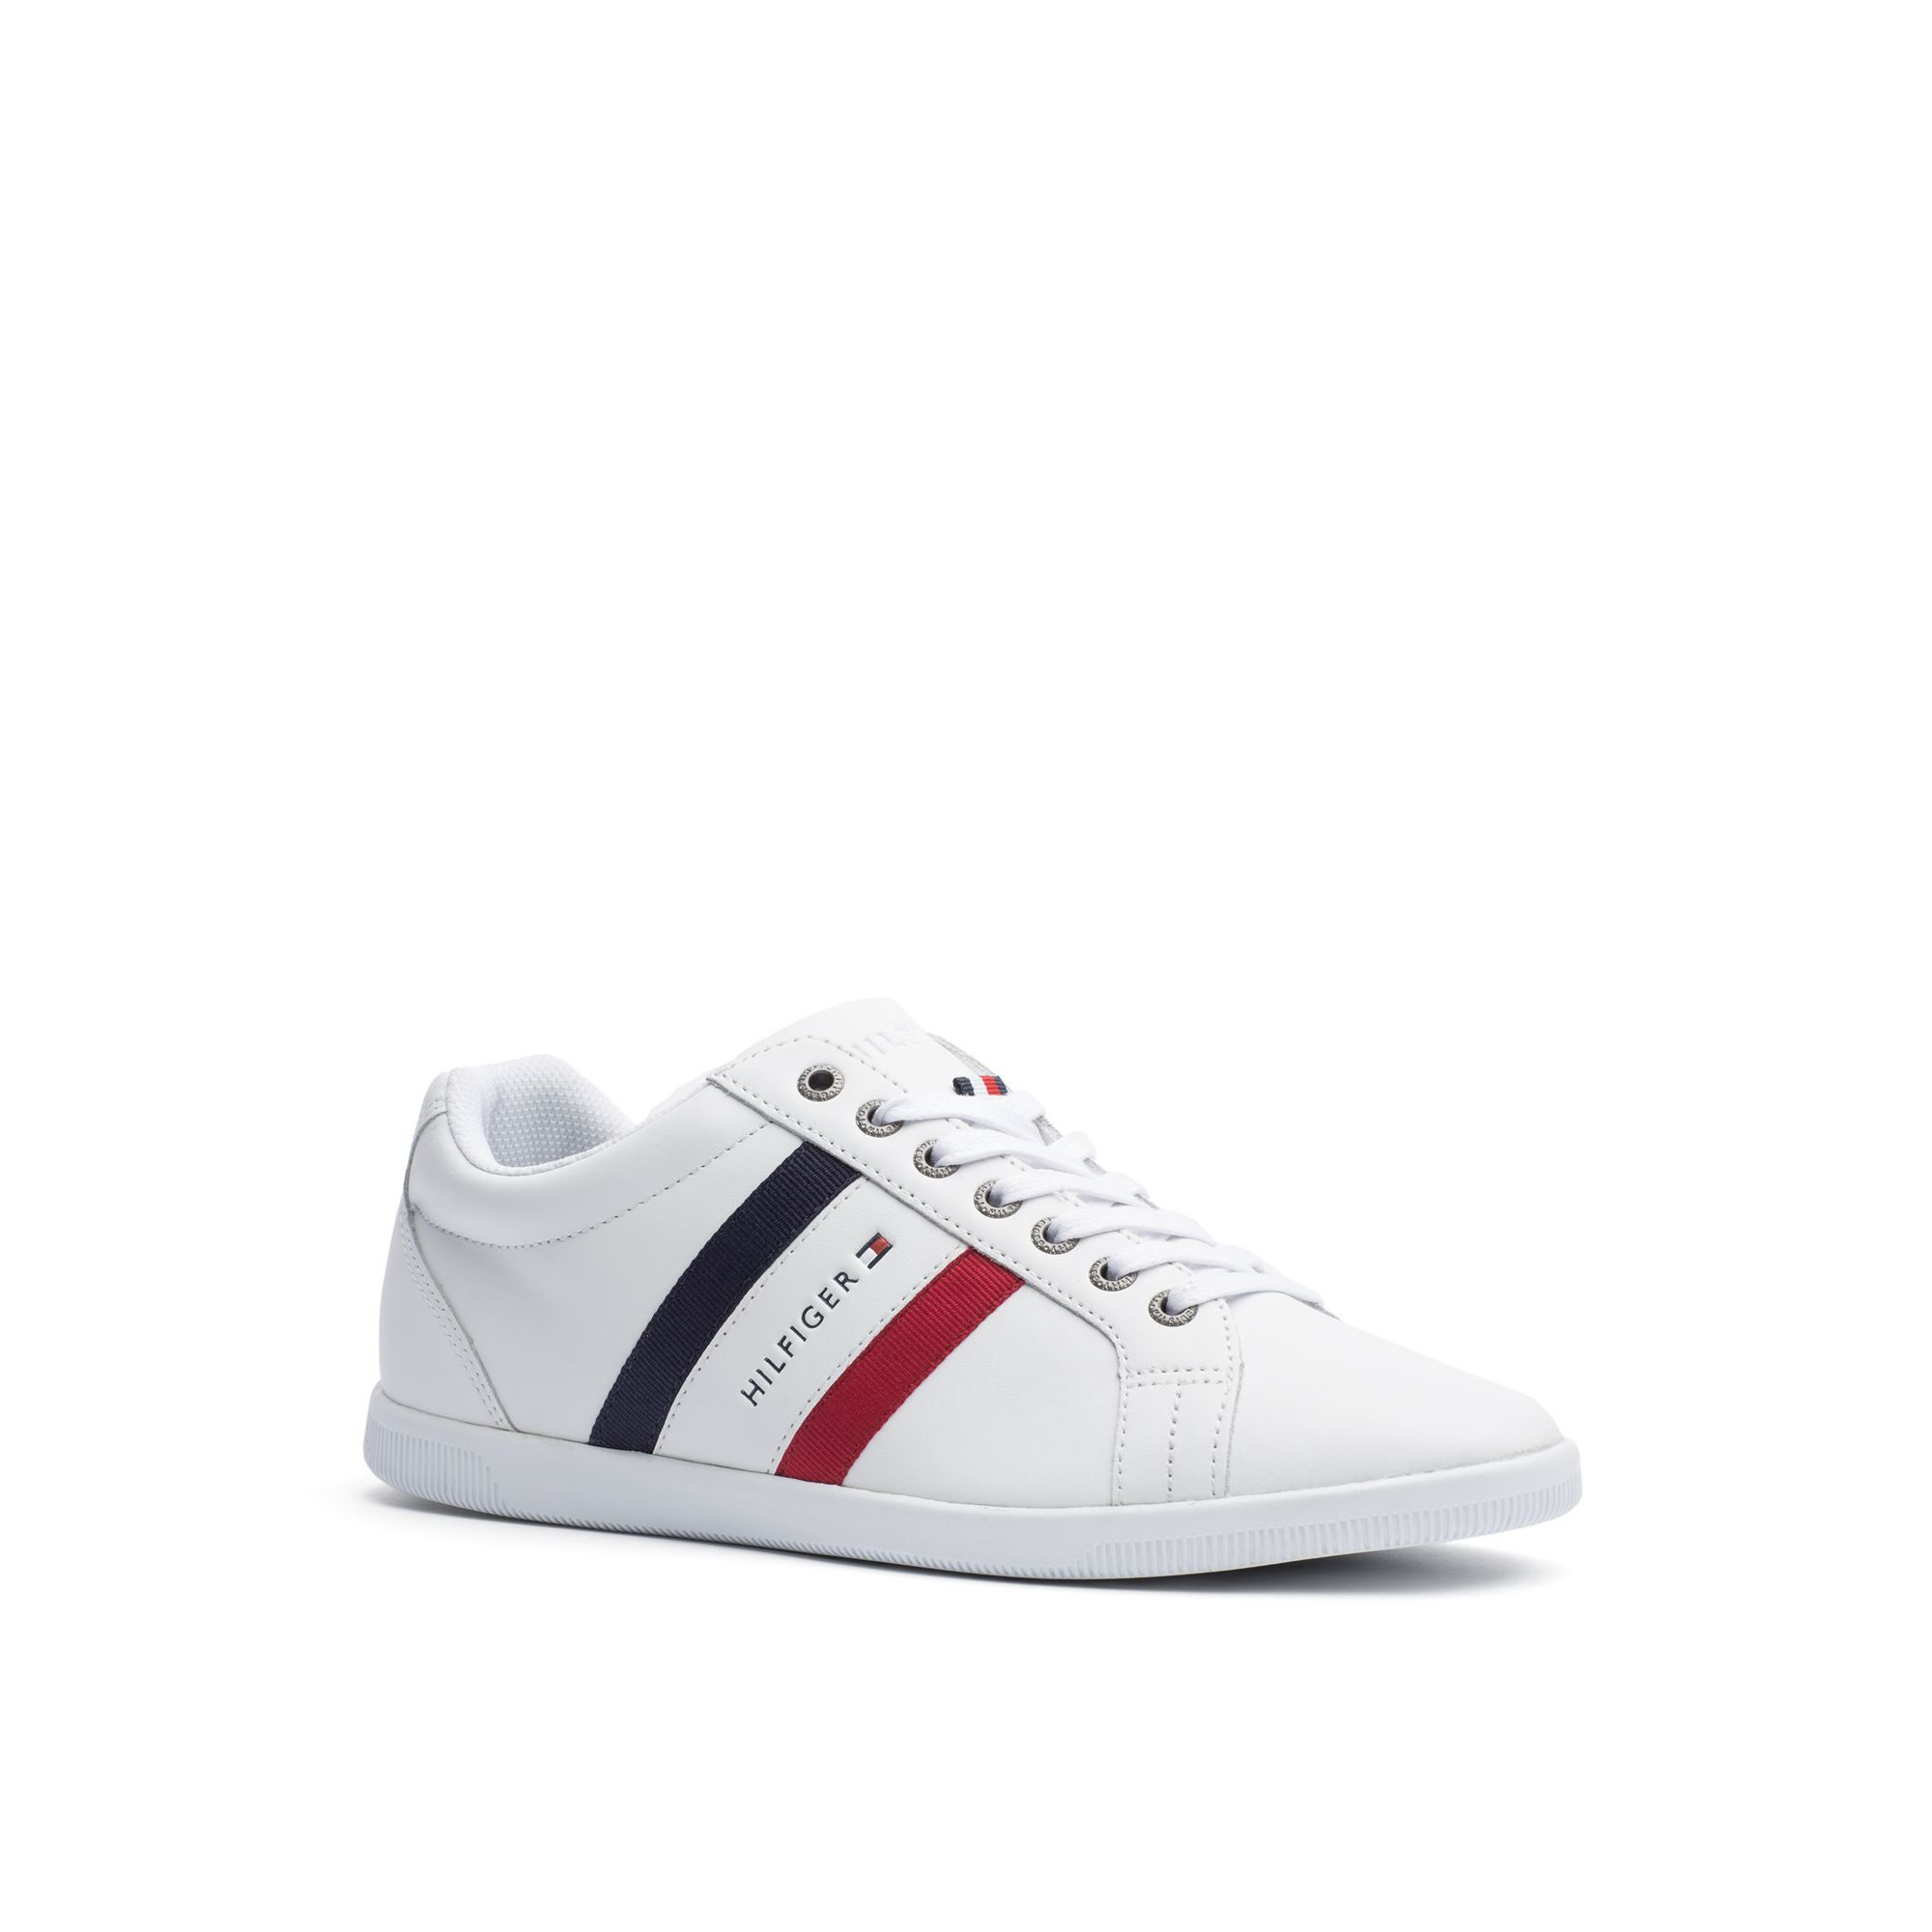 1282eb607ed TOMMY HILFIGER MULTI-STRIPE LEATHER SNEAKER - WHITE. #tommyhilfiger #shoes #